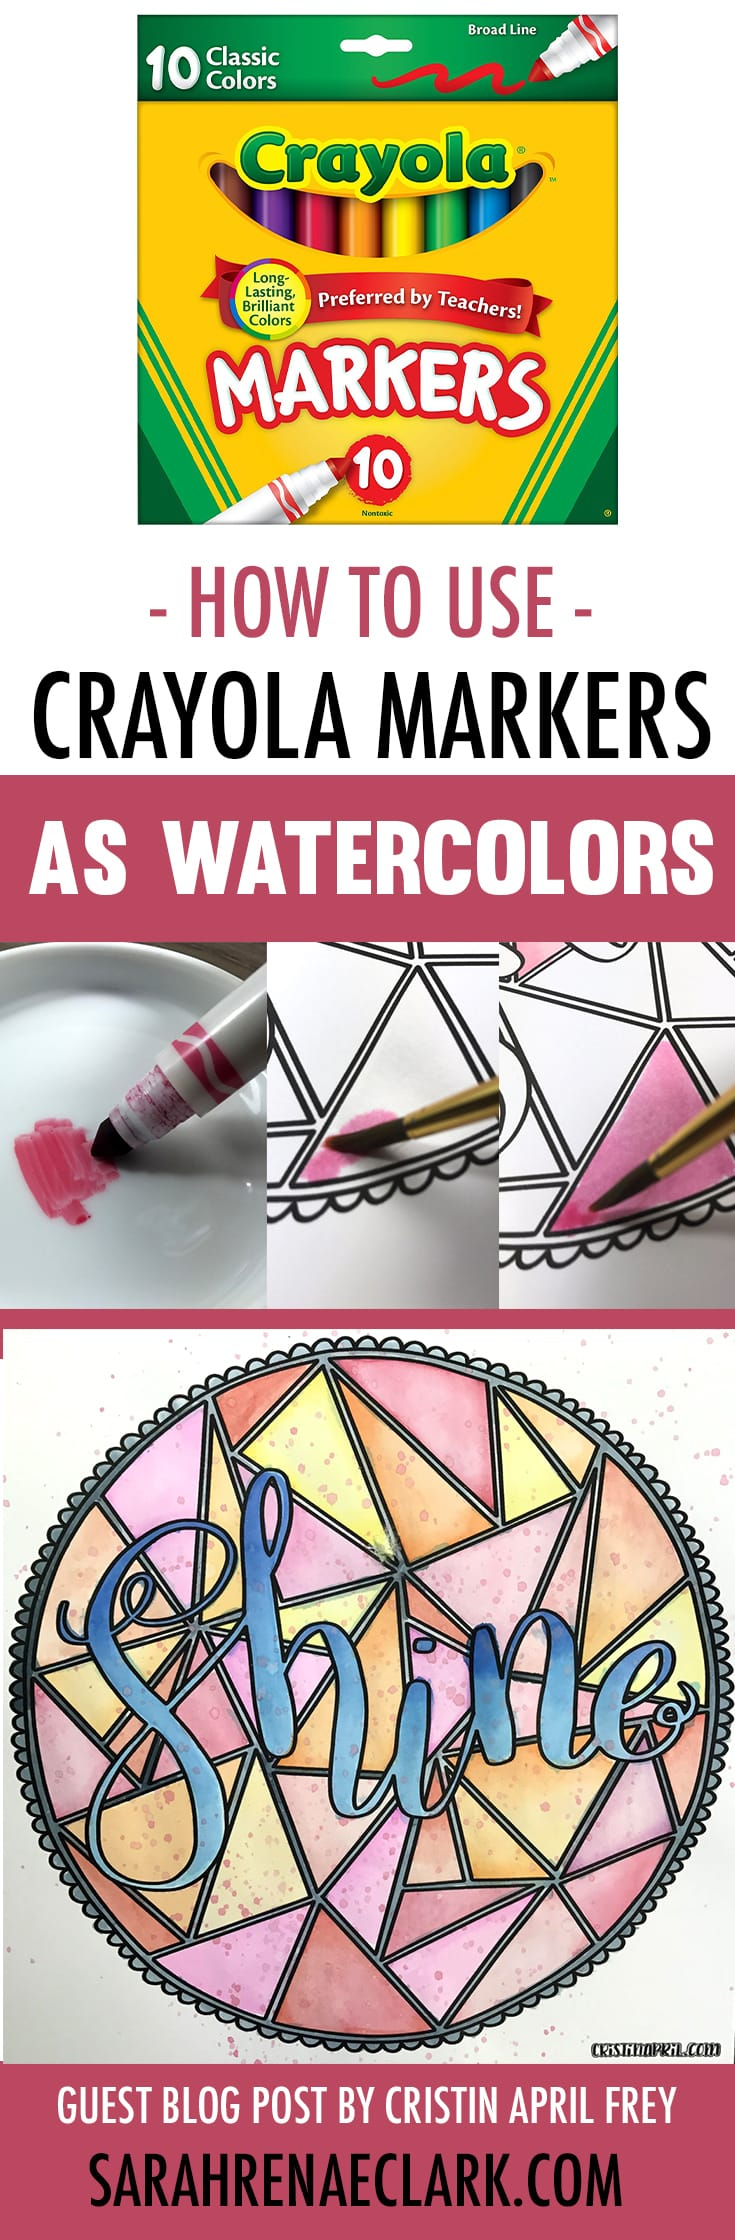 What a clever Crayola hack! Use your Crayola markers as watercolor paints. Check out the step-by-step photos and video tutorial, plus other adult coloring hacks at www.sarahrenaeclark.com | How to use Crayola markers as watercolors